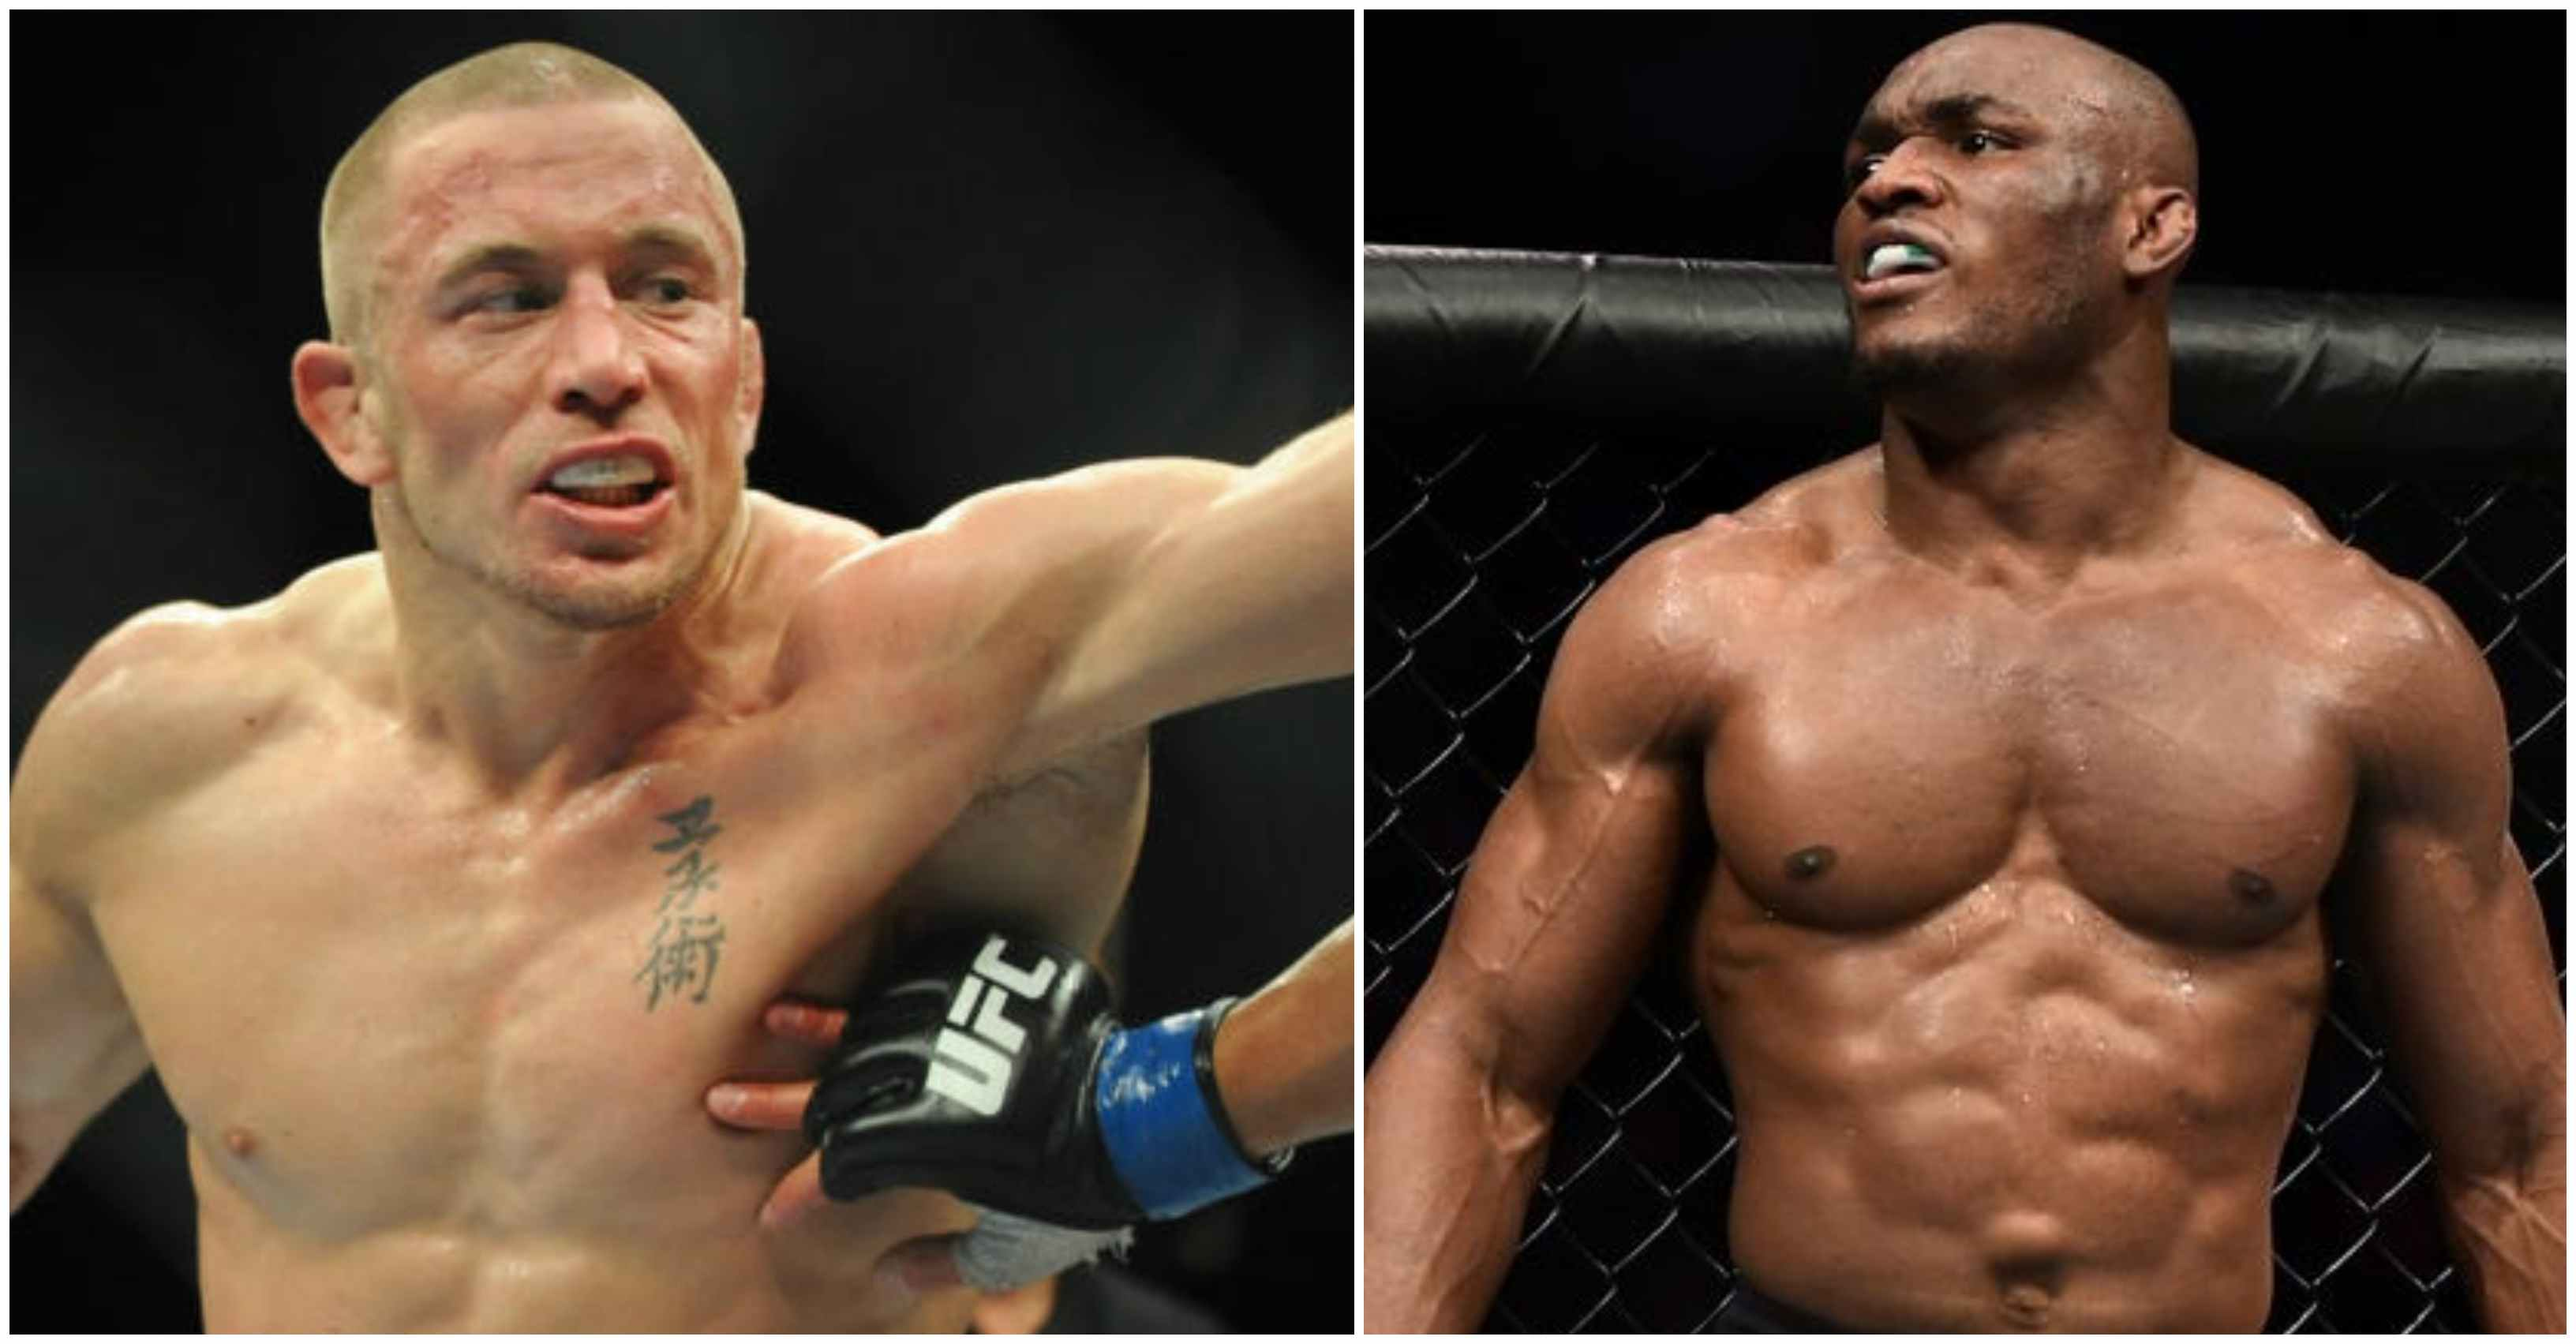 Kamaru Usman wants to break Welterweight win record by beating current record holder GSP - Kamaru